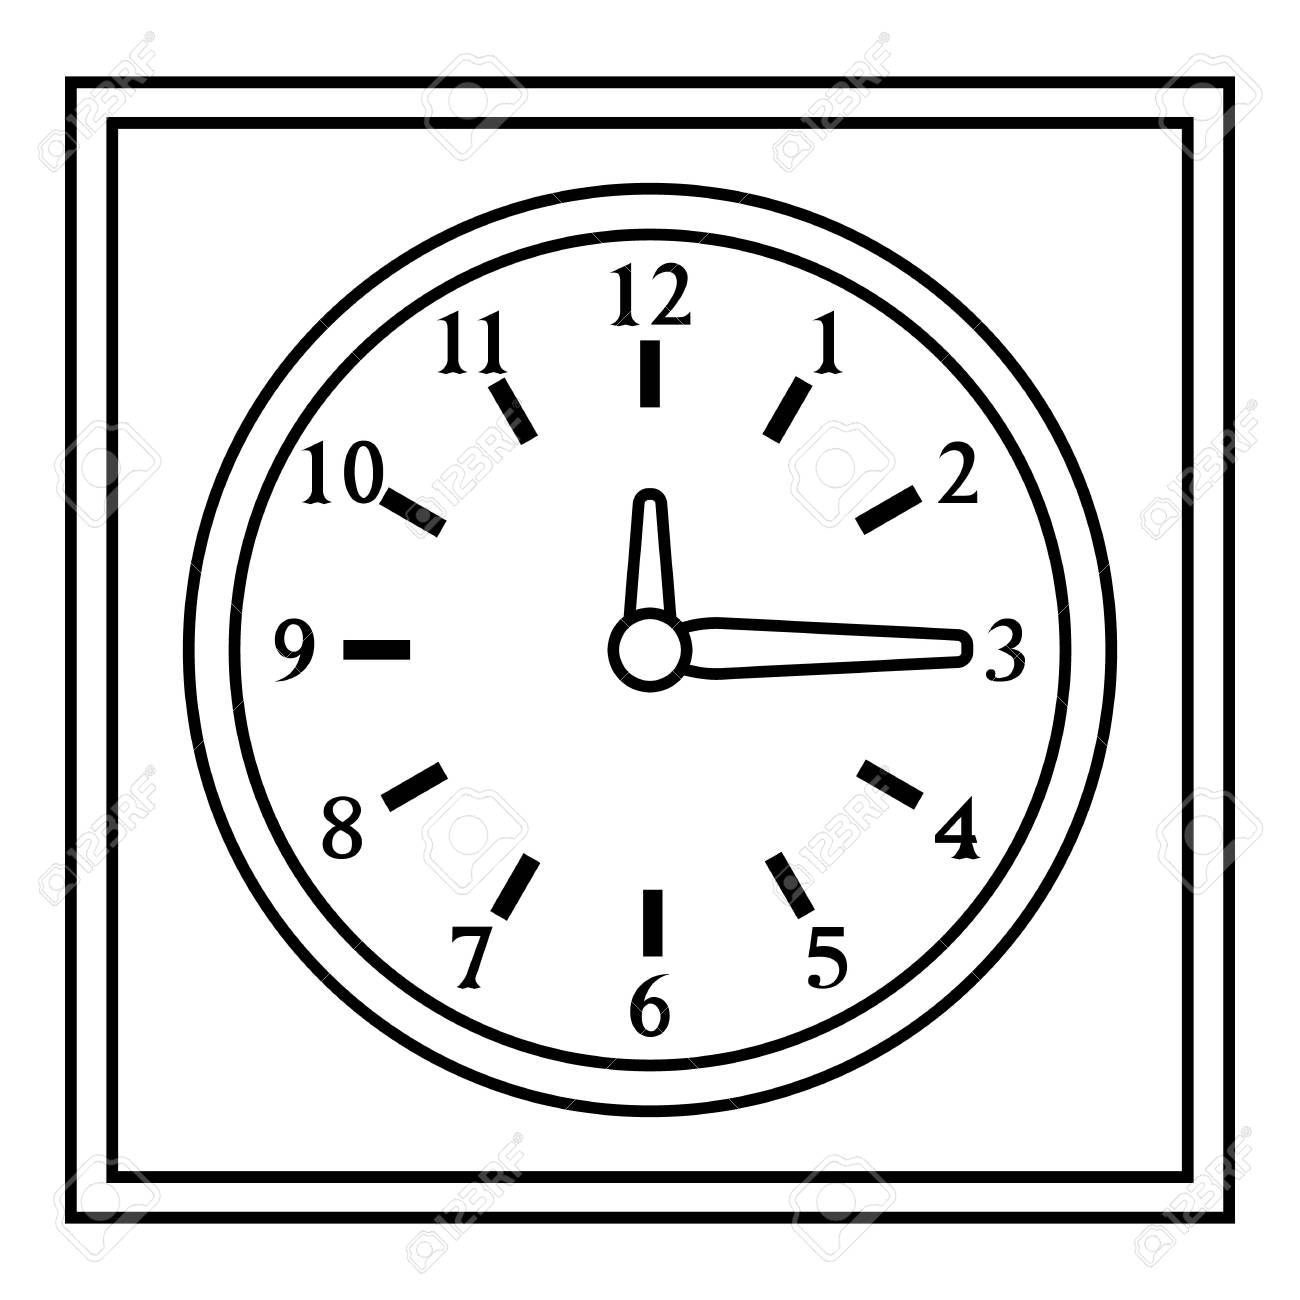 Square Wall Clock Icon Outline Style Royalty Free Cliparts Vectors And Stock Illustration Image 70058763